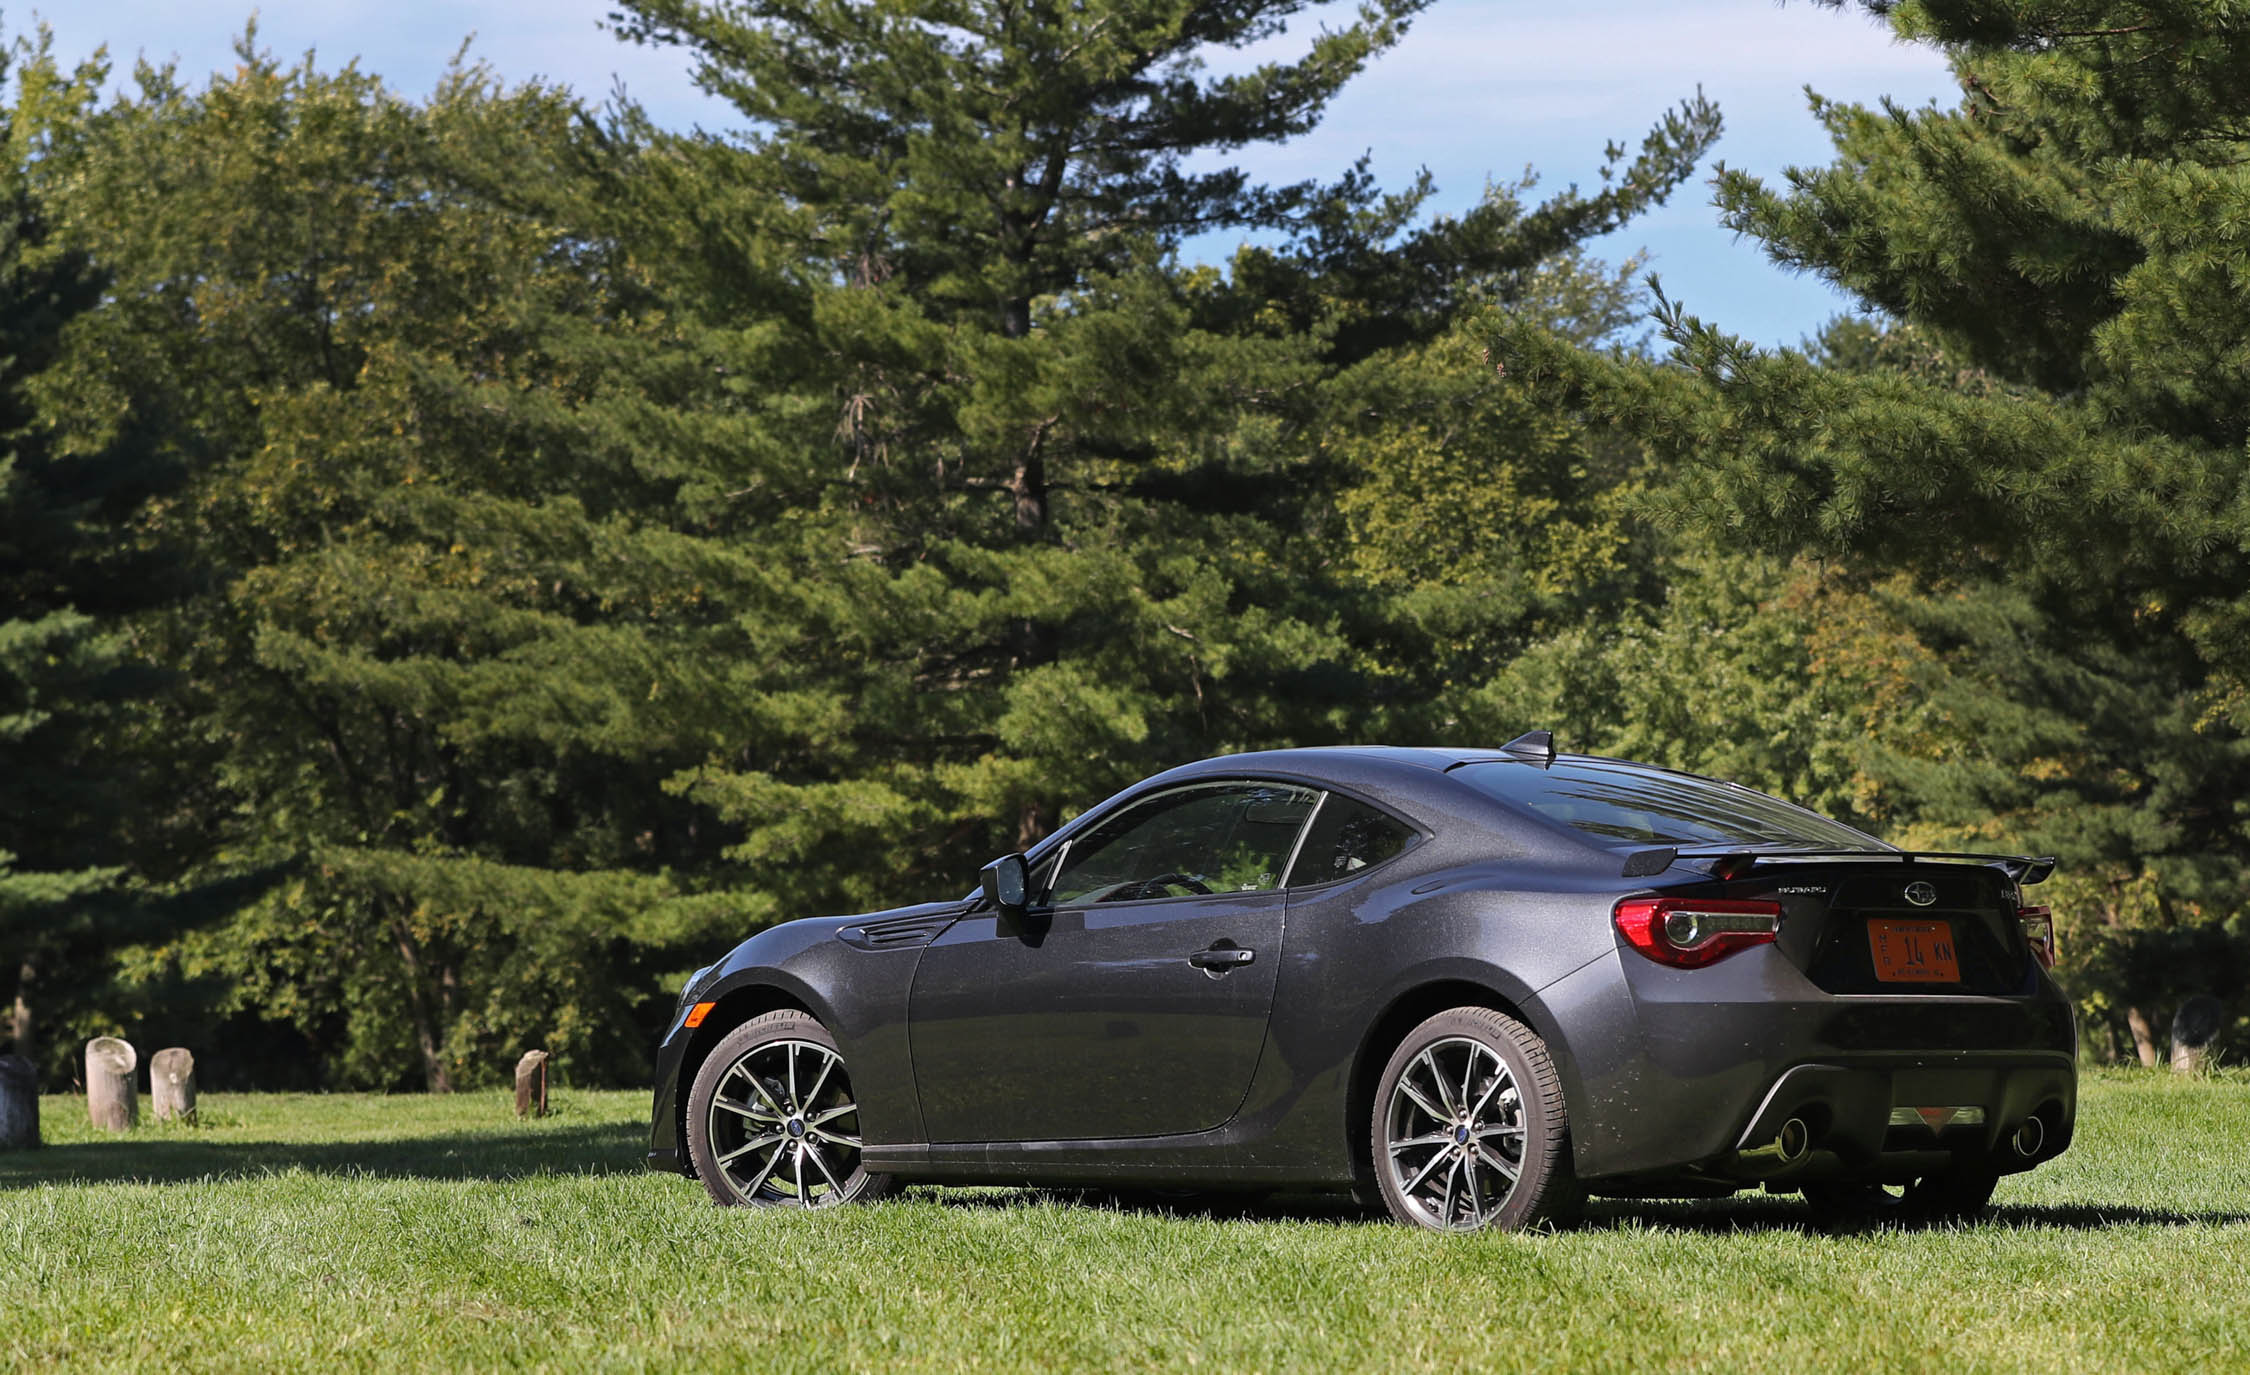 2017 Subaru BRZ Exterior Side And Rear Profile (Photo 10 of 27)